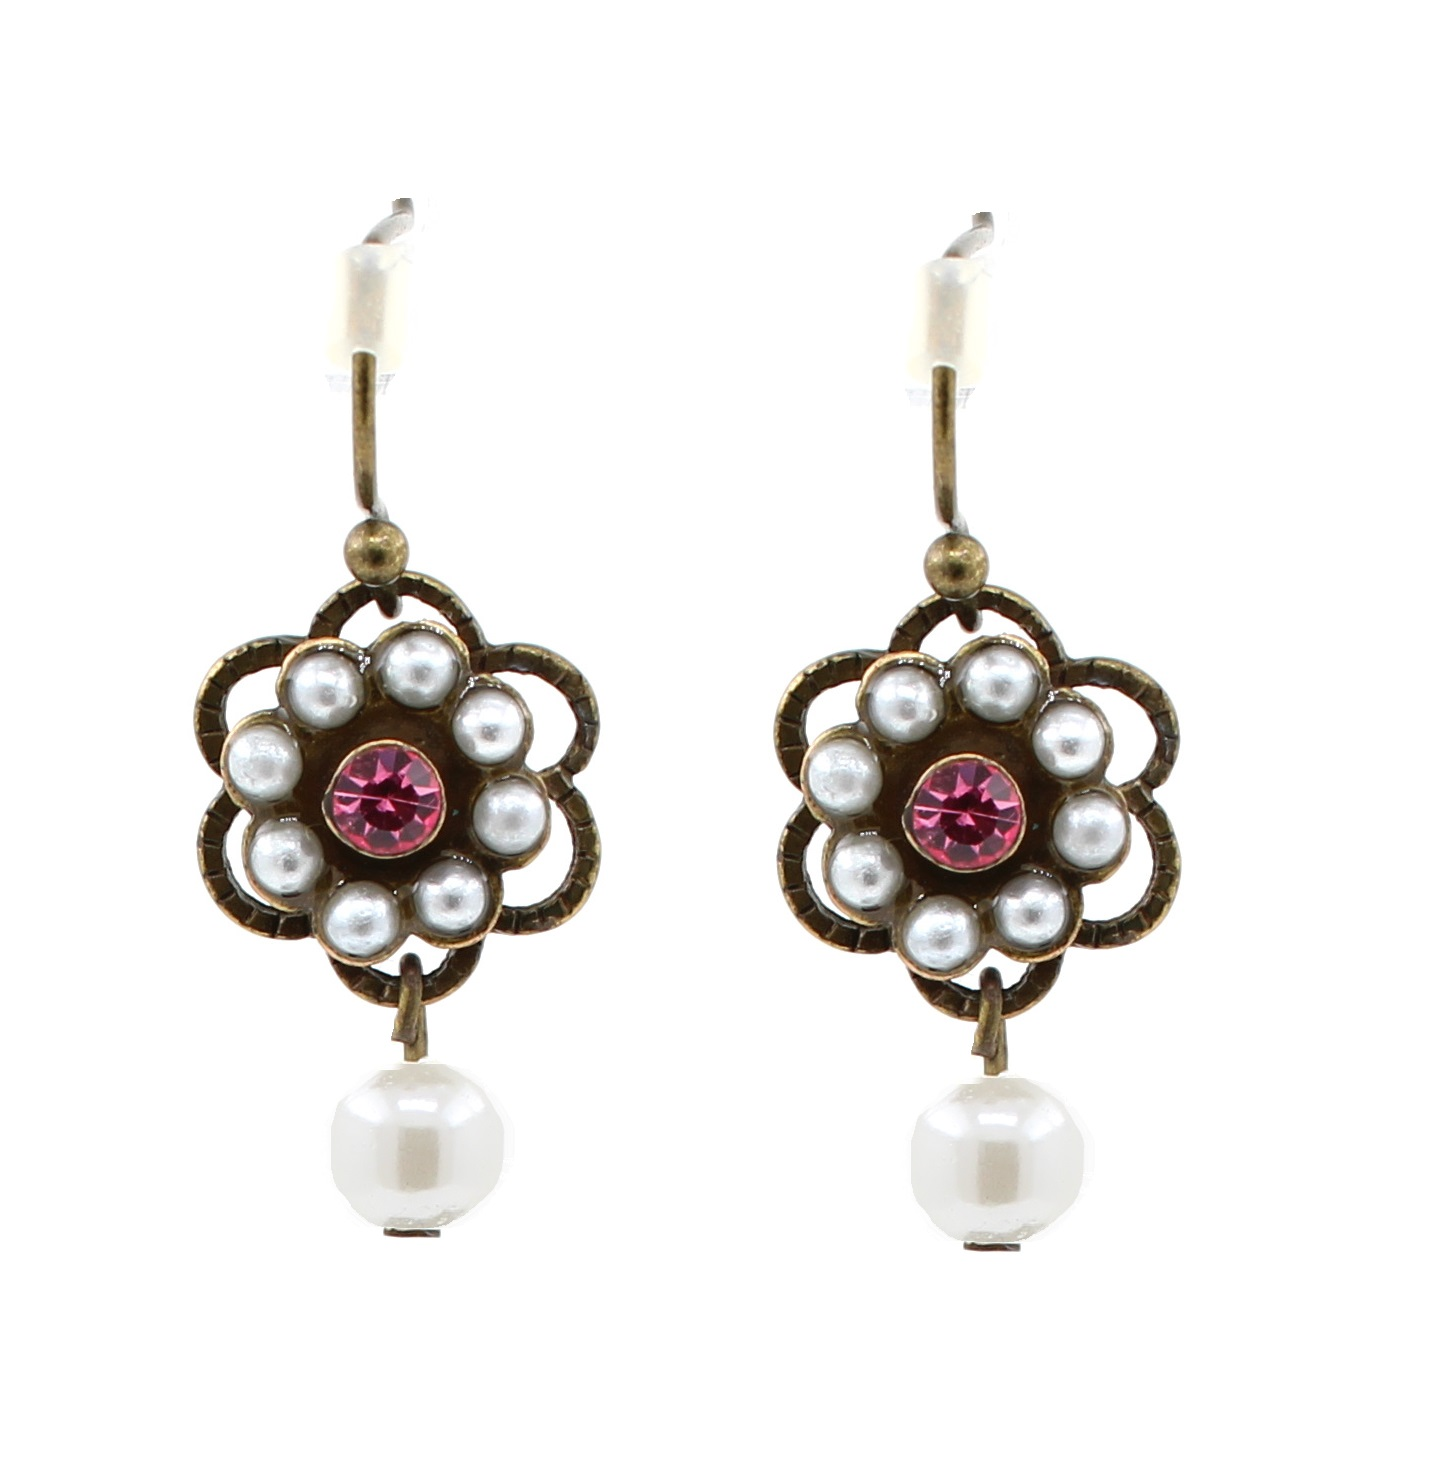 Lisbeth Dahl - Crystal Pearl Flower Earrings - Vintage Gold/Cream & Pink BNWT